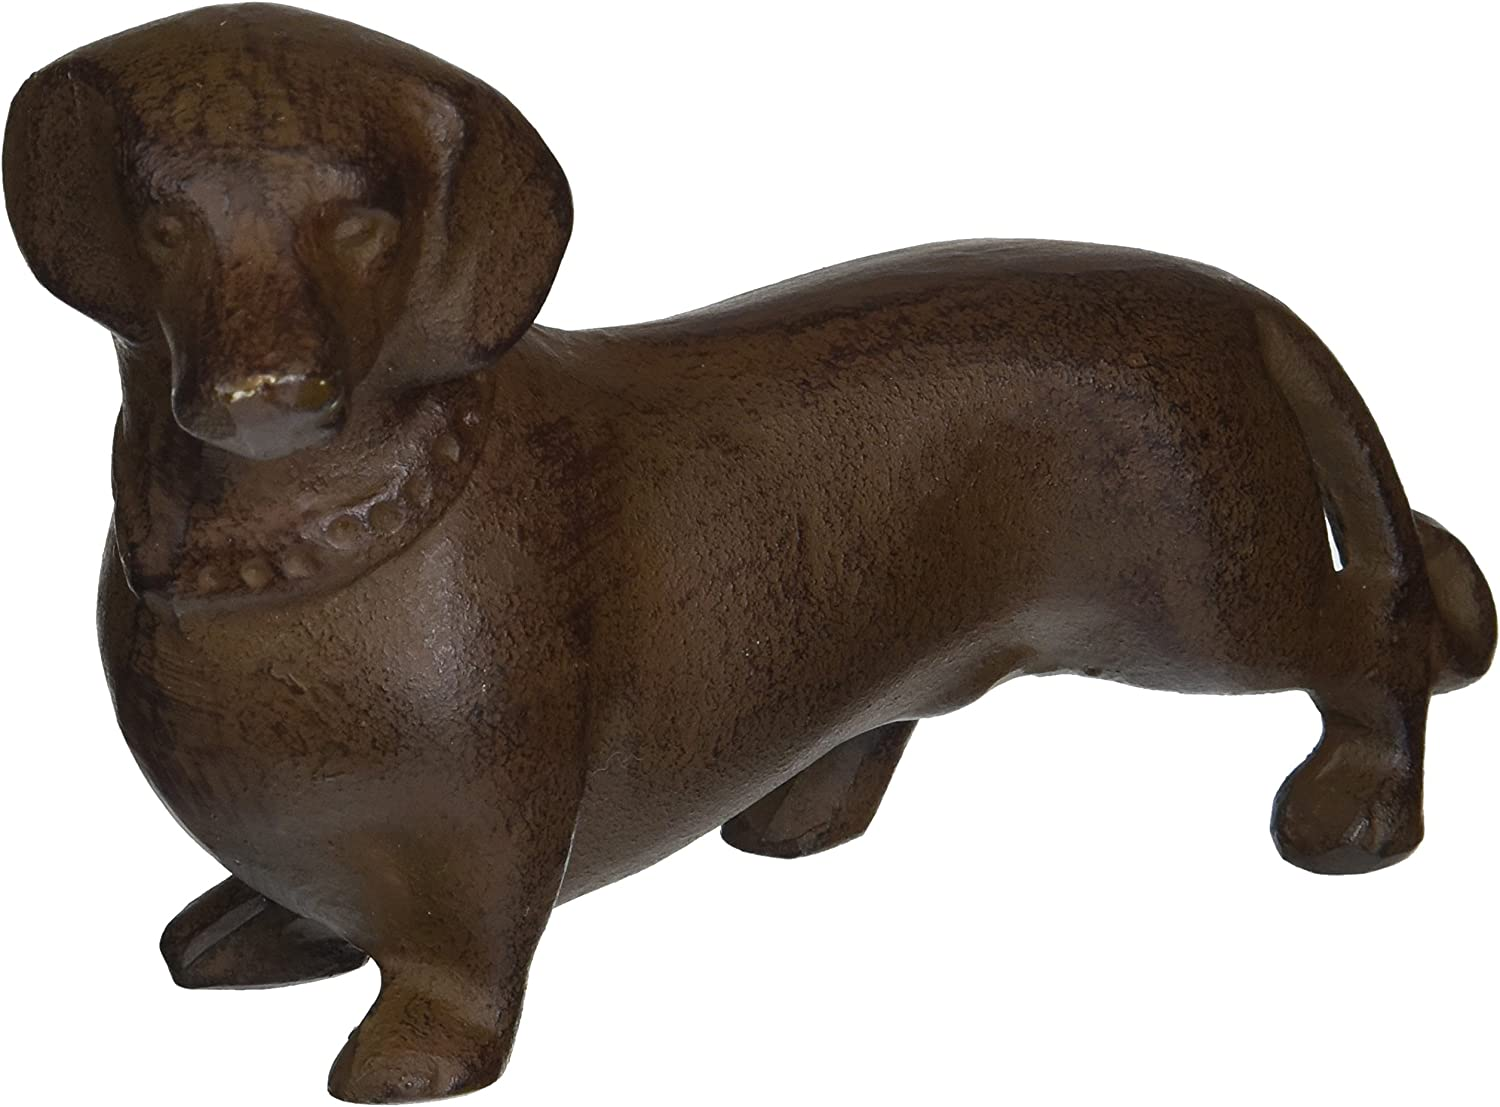 Abbott Collection Cast Iron Dachshund Figurine, Dark Brown